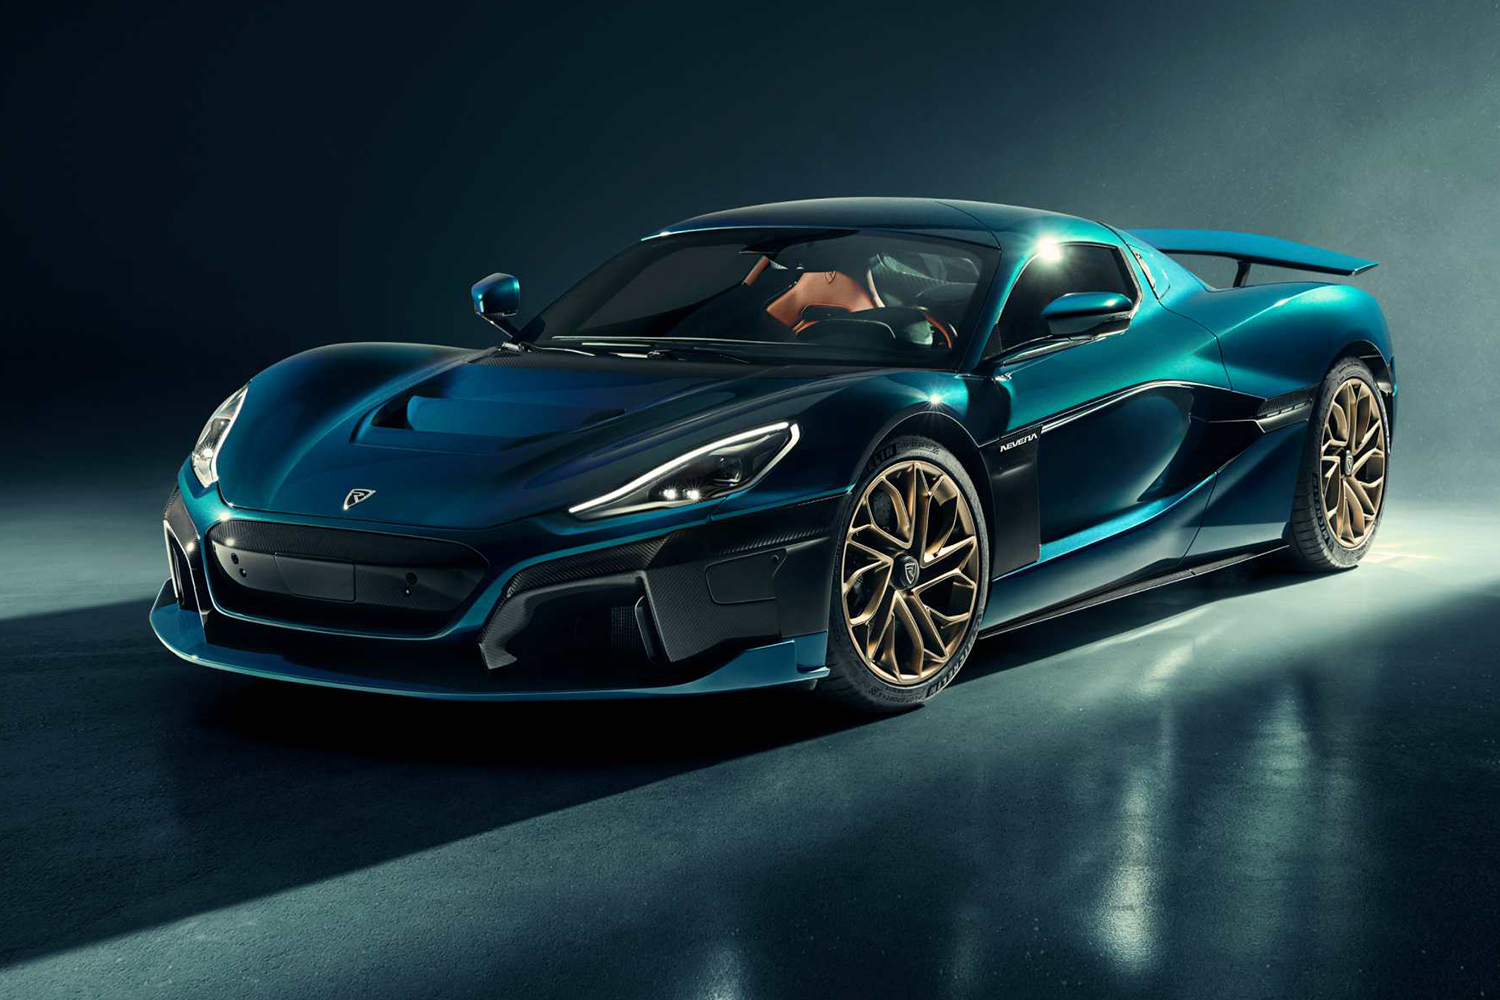 The Rimac Nevera electric hypercar, which could be the quickest sports car ever made